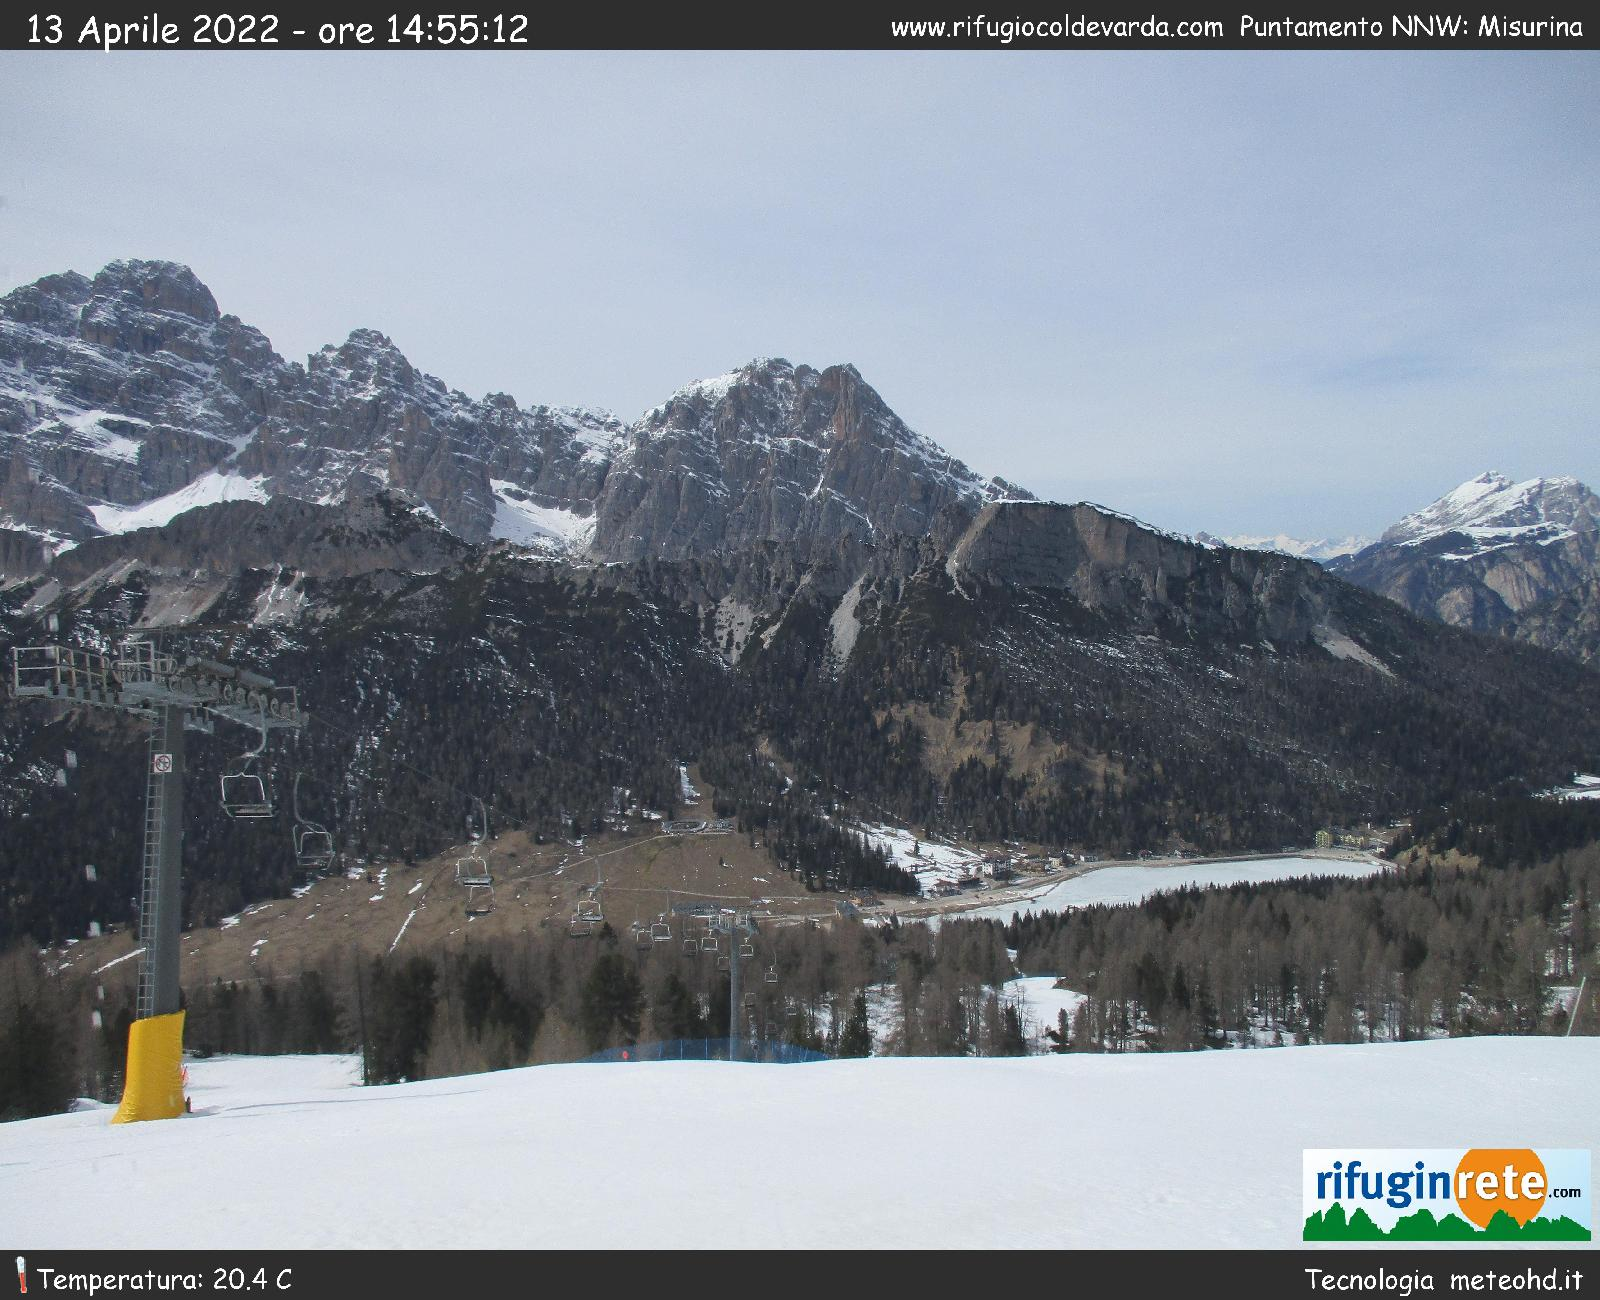 Webcam <br><span> rifugio coldevarda</span>